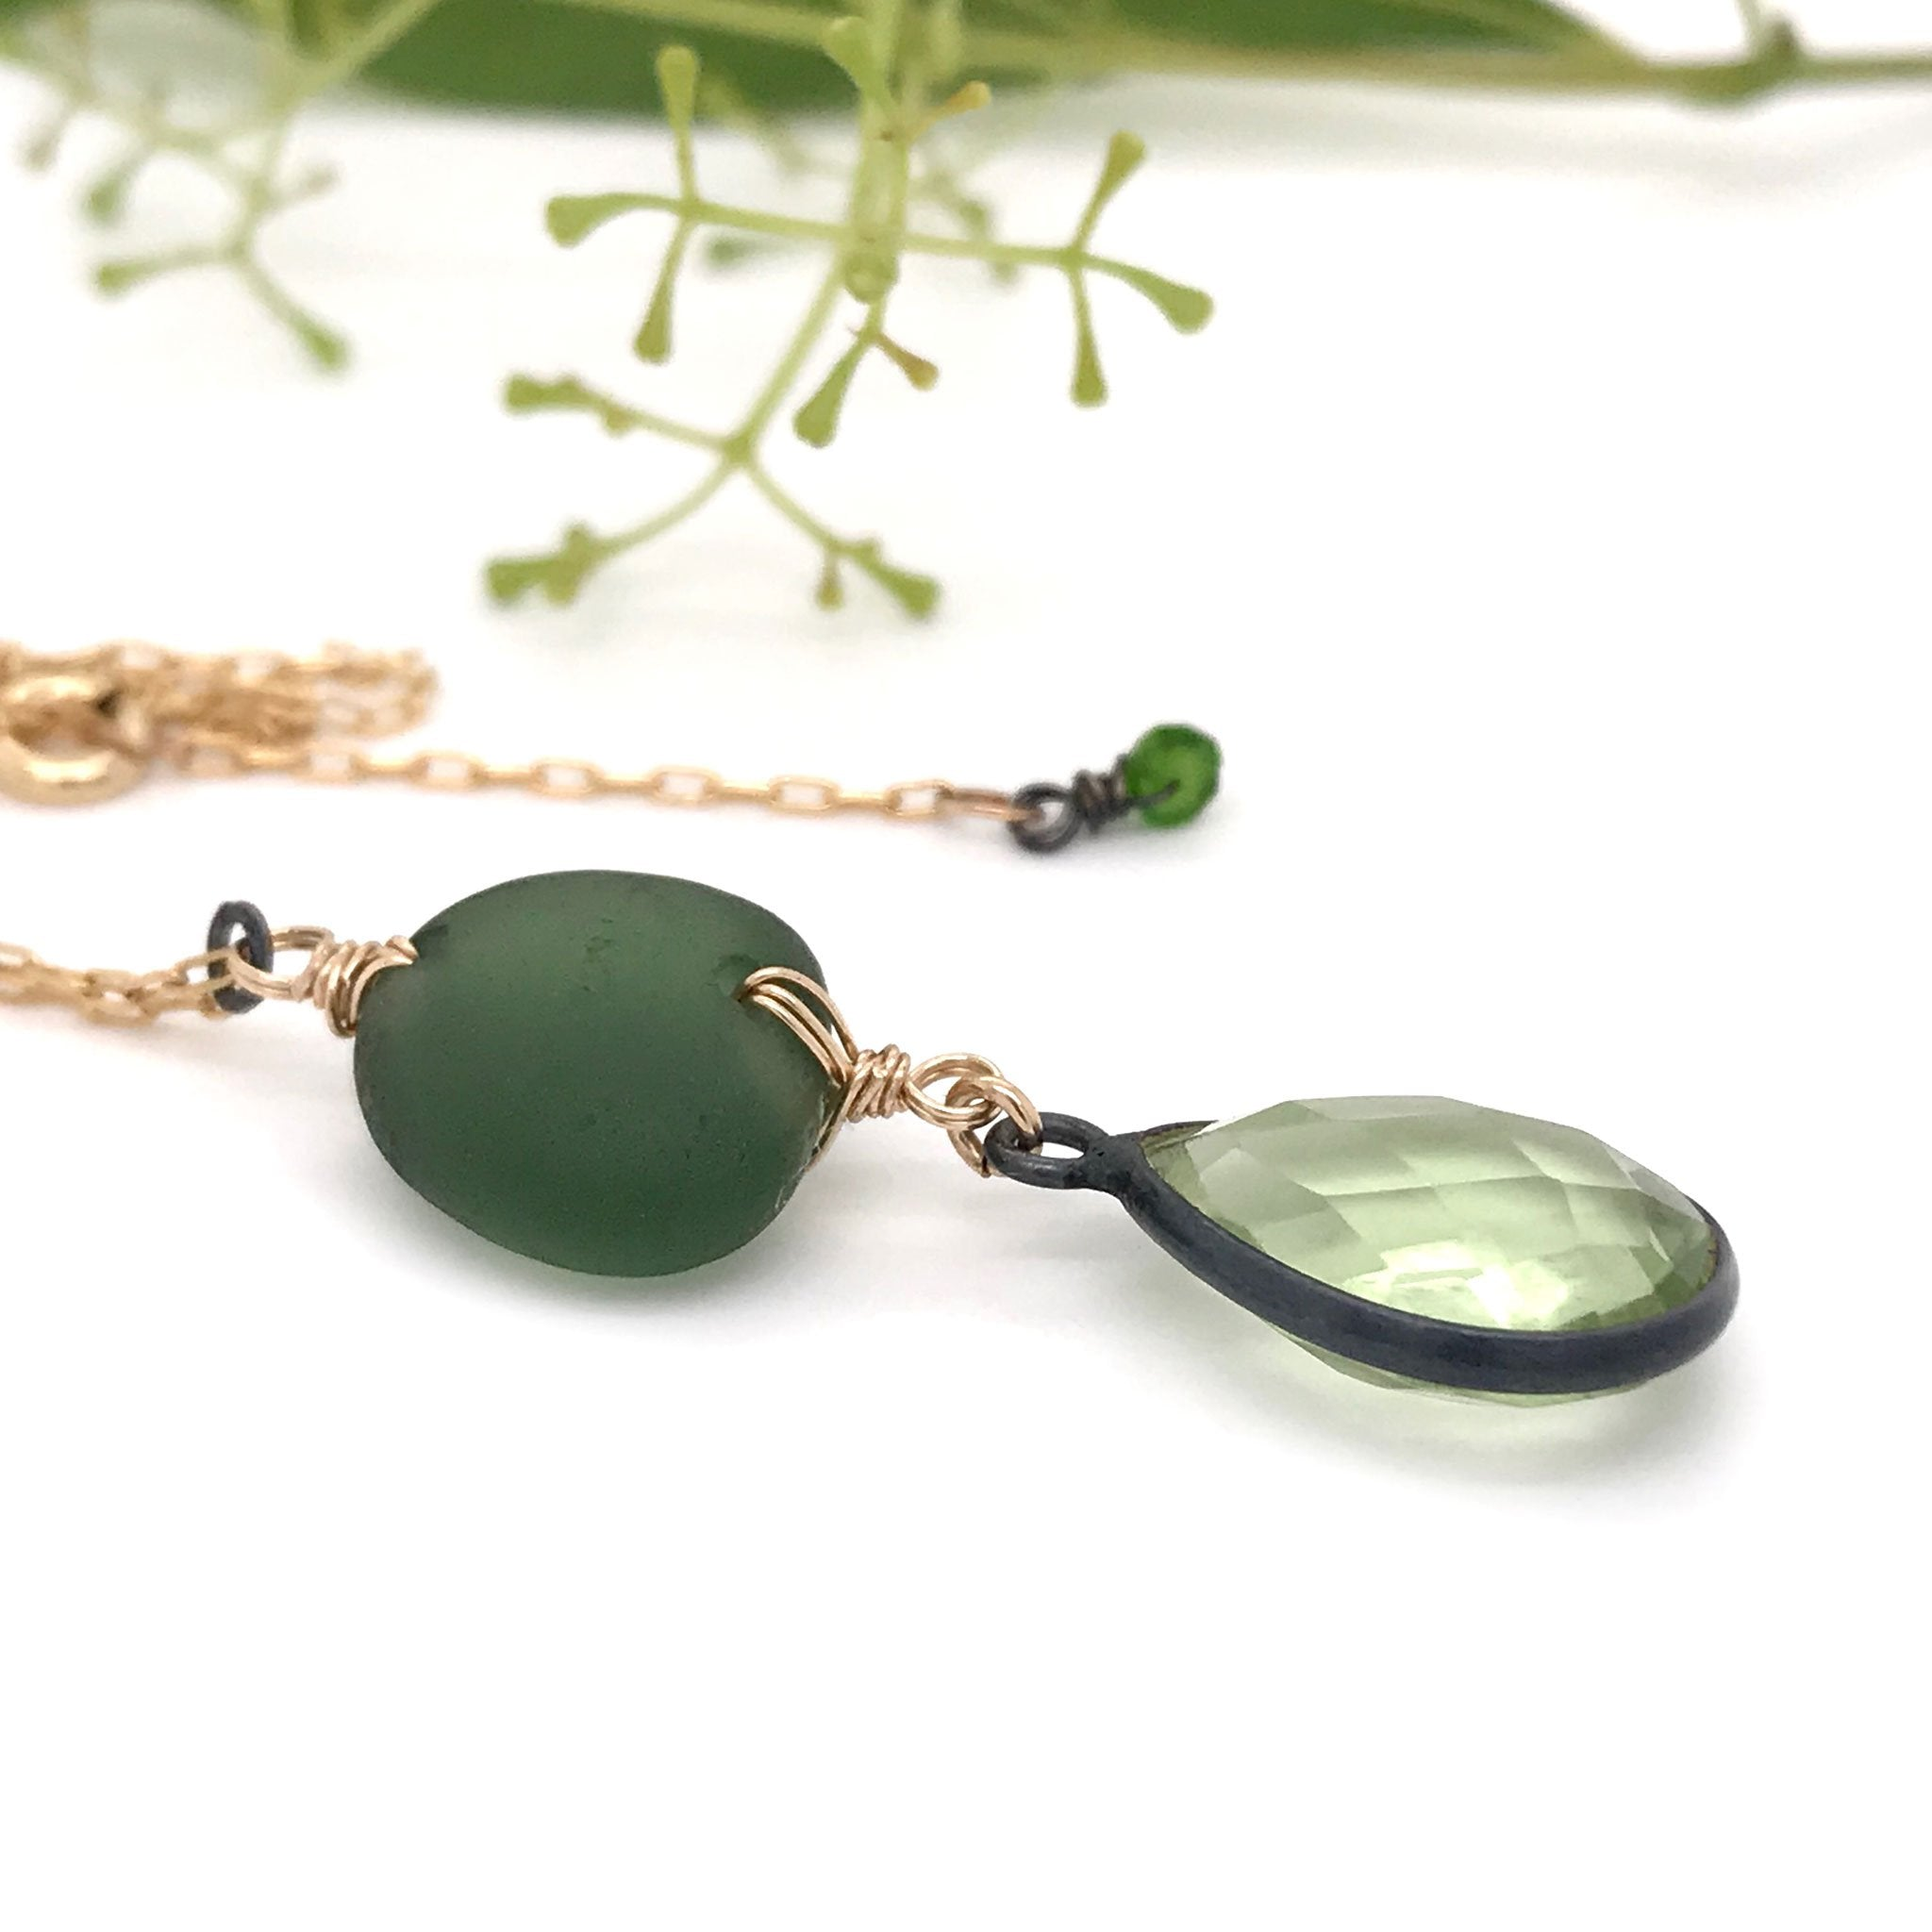 green seaglass necklace with green quartz kriket Broadhurst jewellery